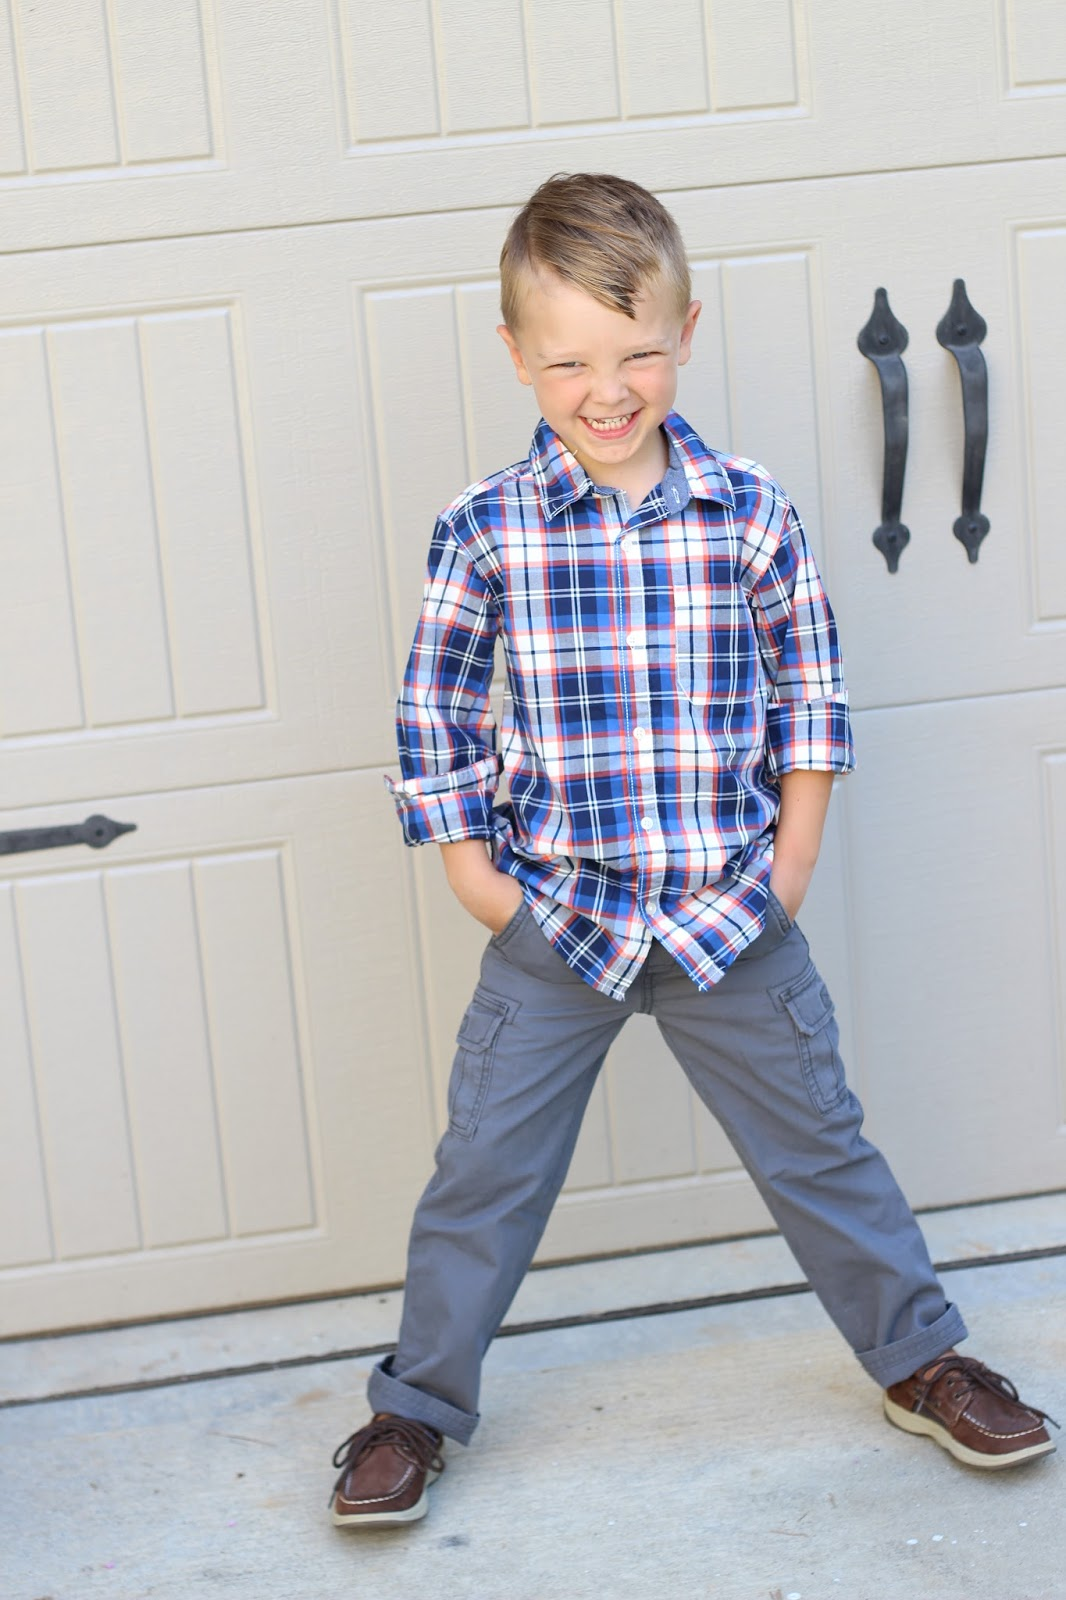 Best back to school clothing for boys